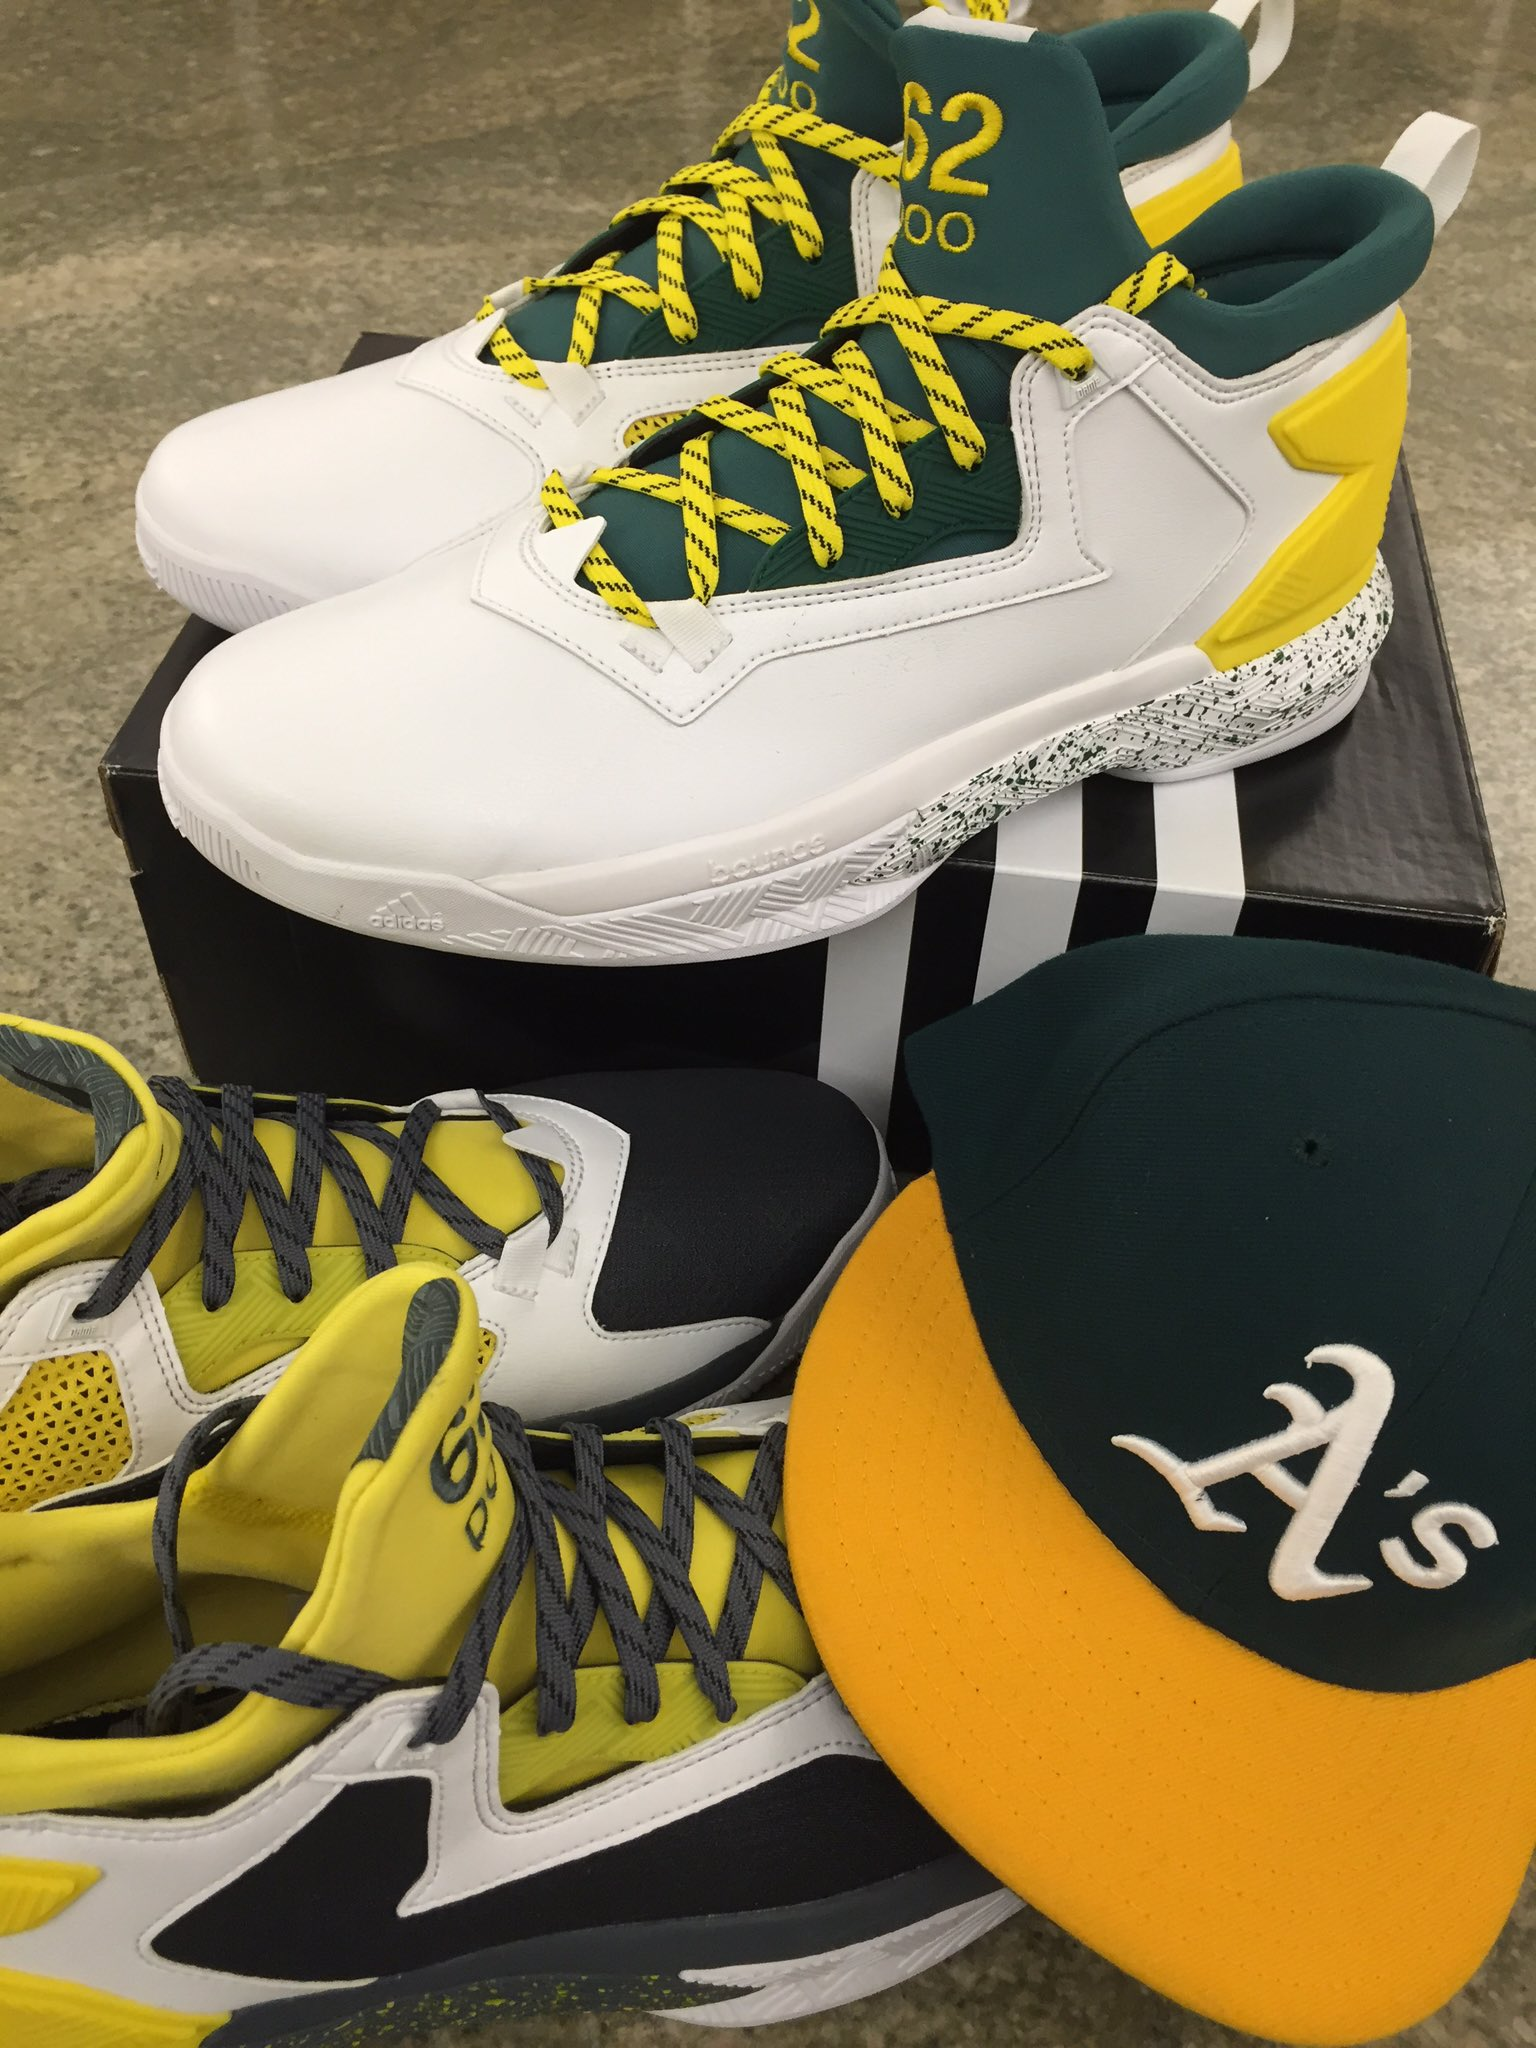 s/o to @adidas for hooking it up with the custom Oakland inspired green & gold @Dame_Lillard kicks! https://t.co/HUFjNt3AMb